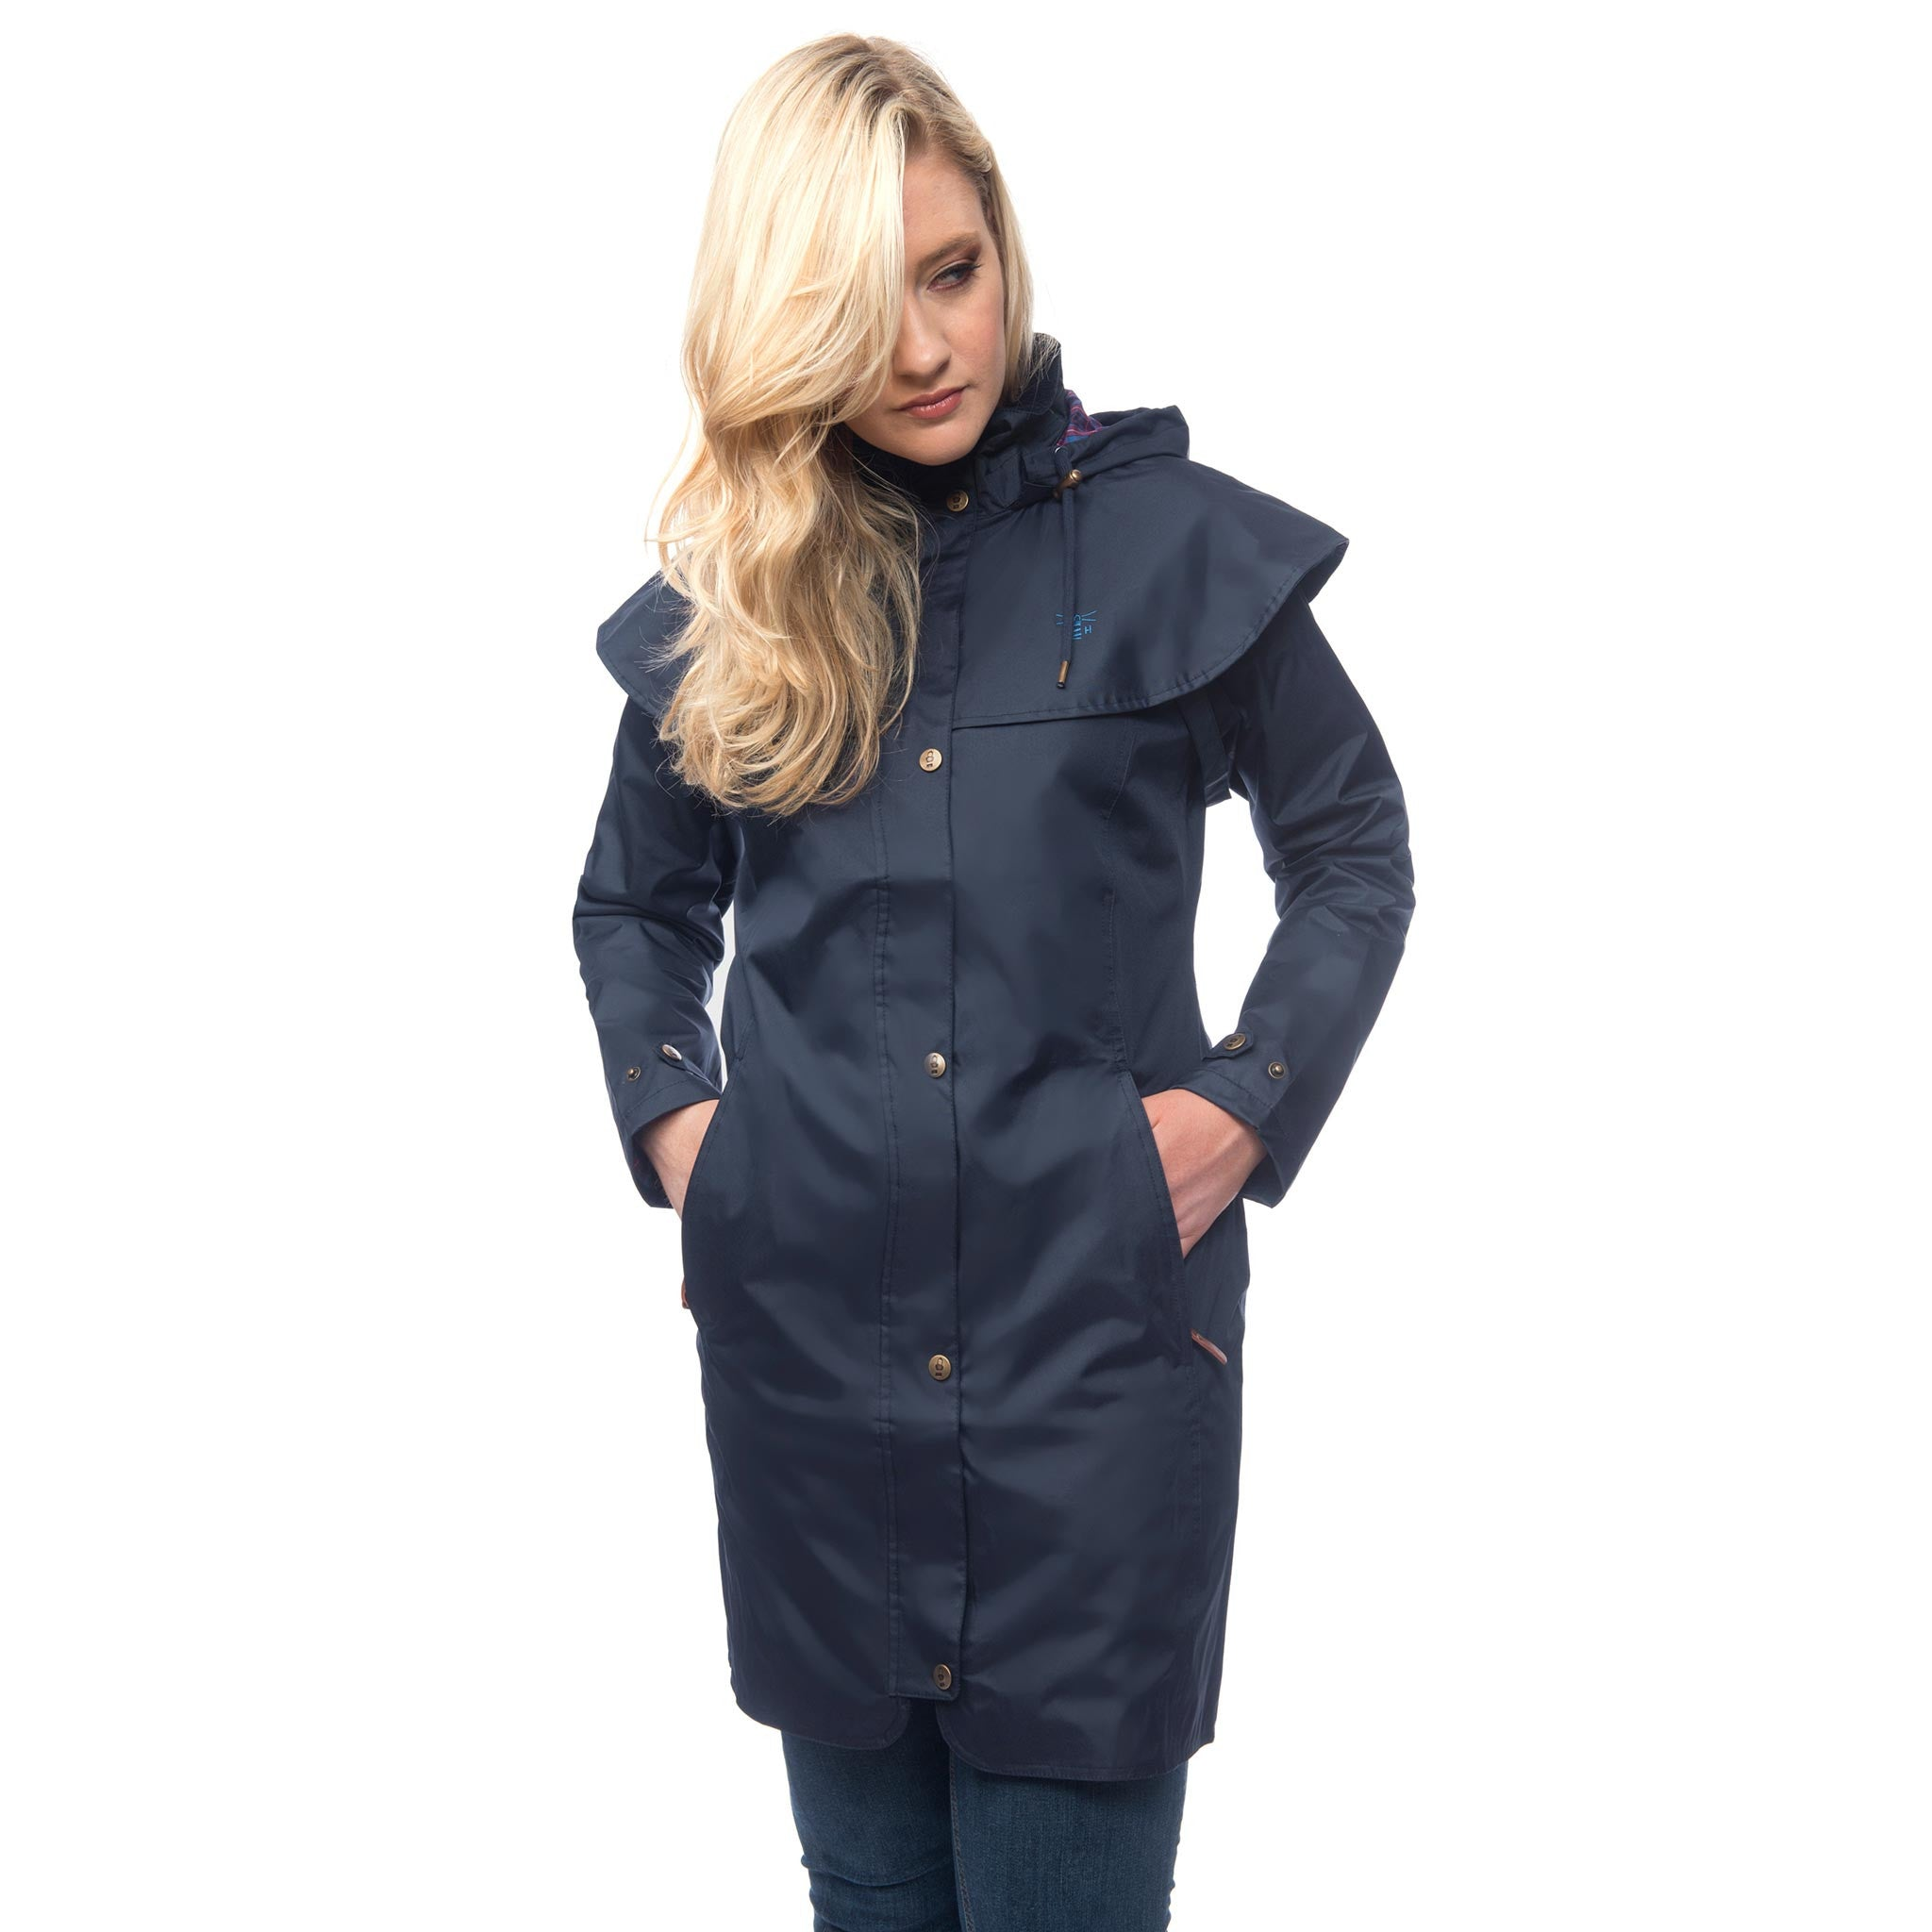 Lighthouse Womens Outrider 3/4 Length Waterproof Raincoat in Navy. Zipped & Buttoned.